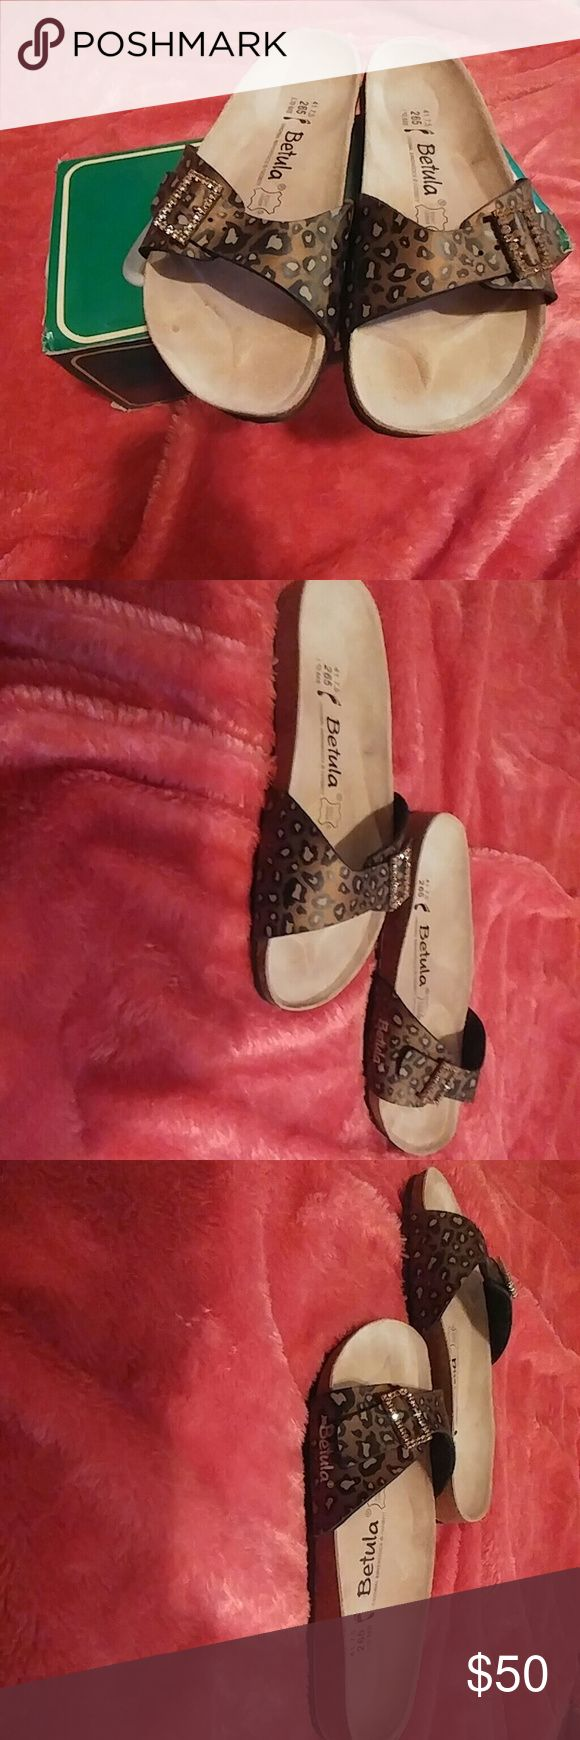 Betula Leopard Sandals Brand new Betula Leopard Sandals that have never been worn. They are still in the original box.  The footbed liner is made of leather and the footbed is made of natural cork. The sole is EVA so it is very flexible and also very comfortable. Birkenstock Shoes Sandals